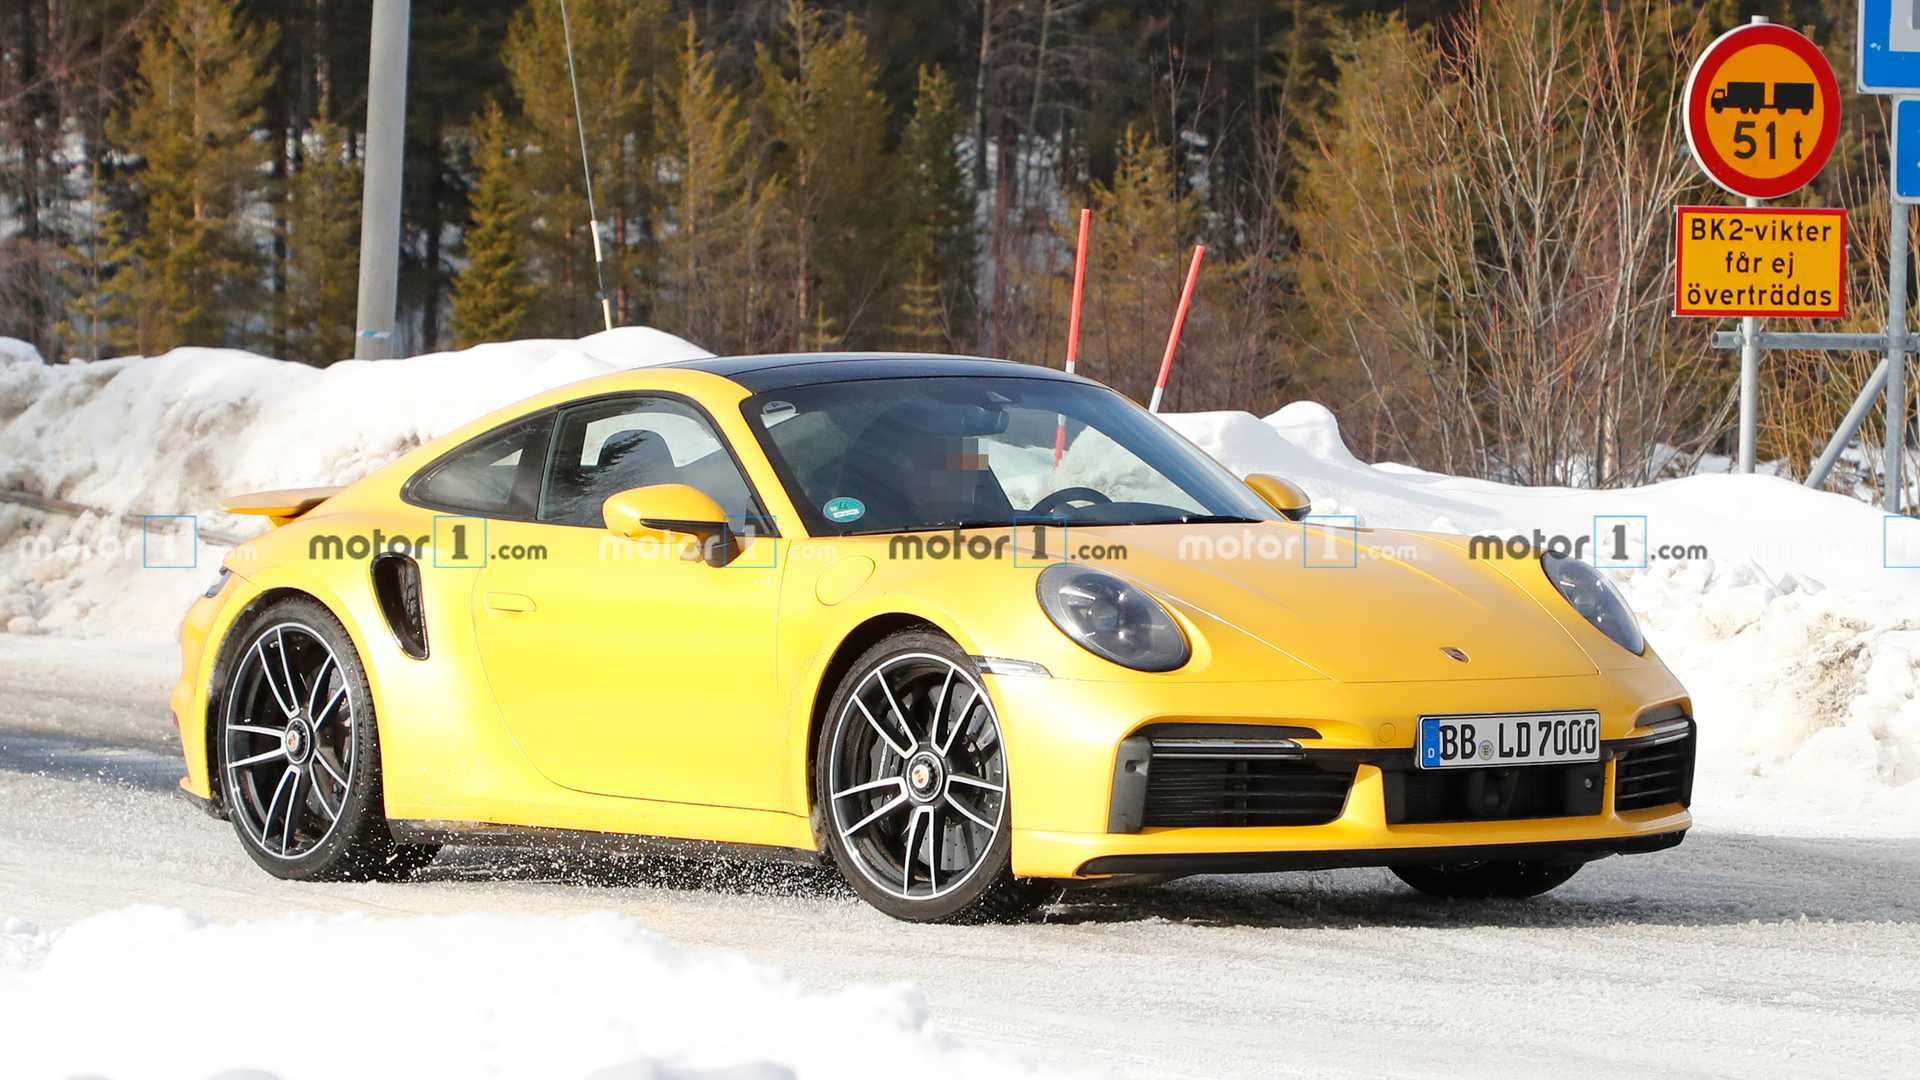 911 Turbo S Real Life Image While Testing